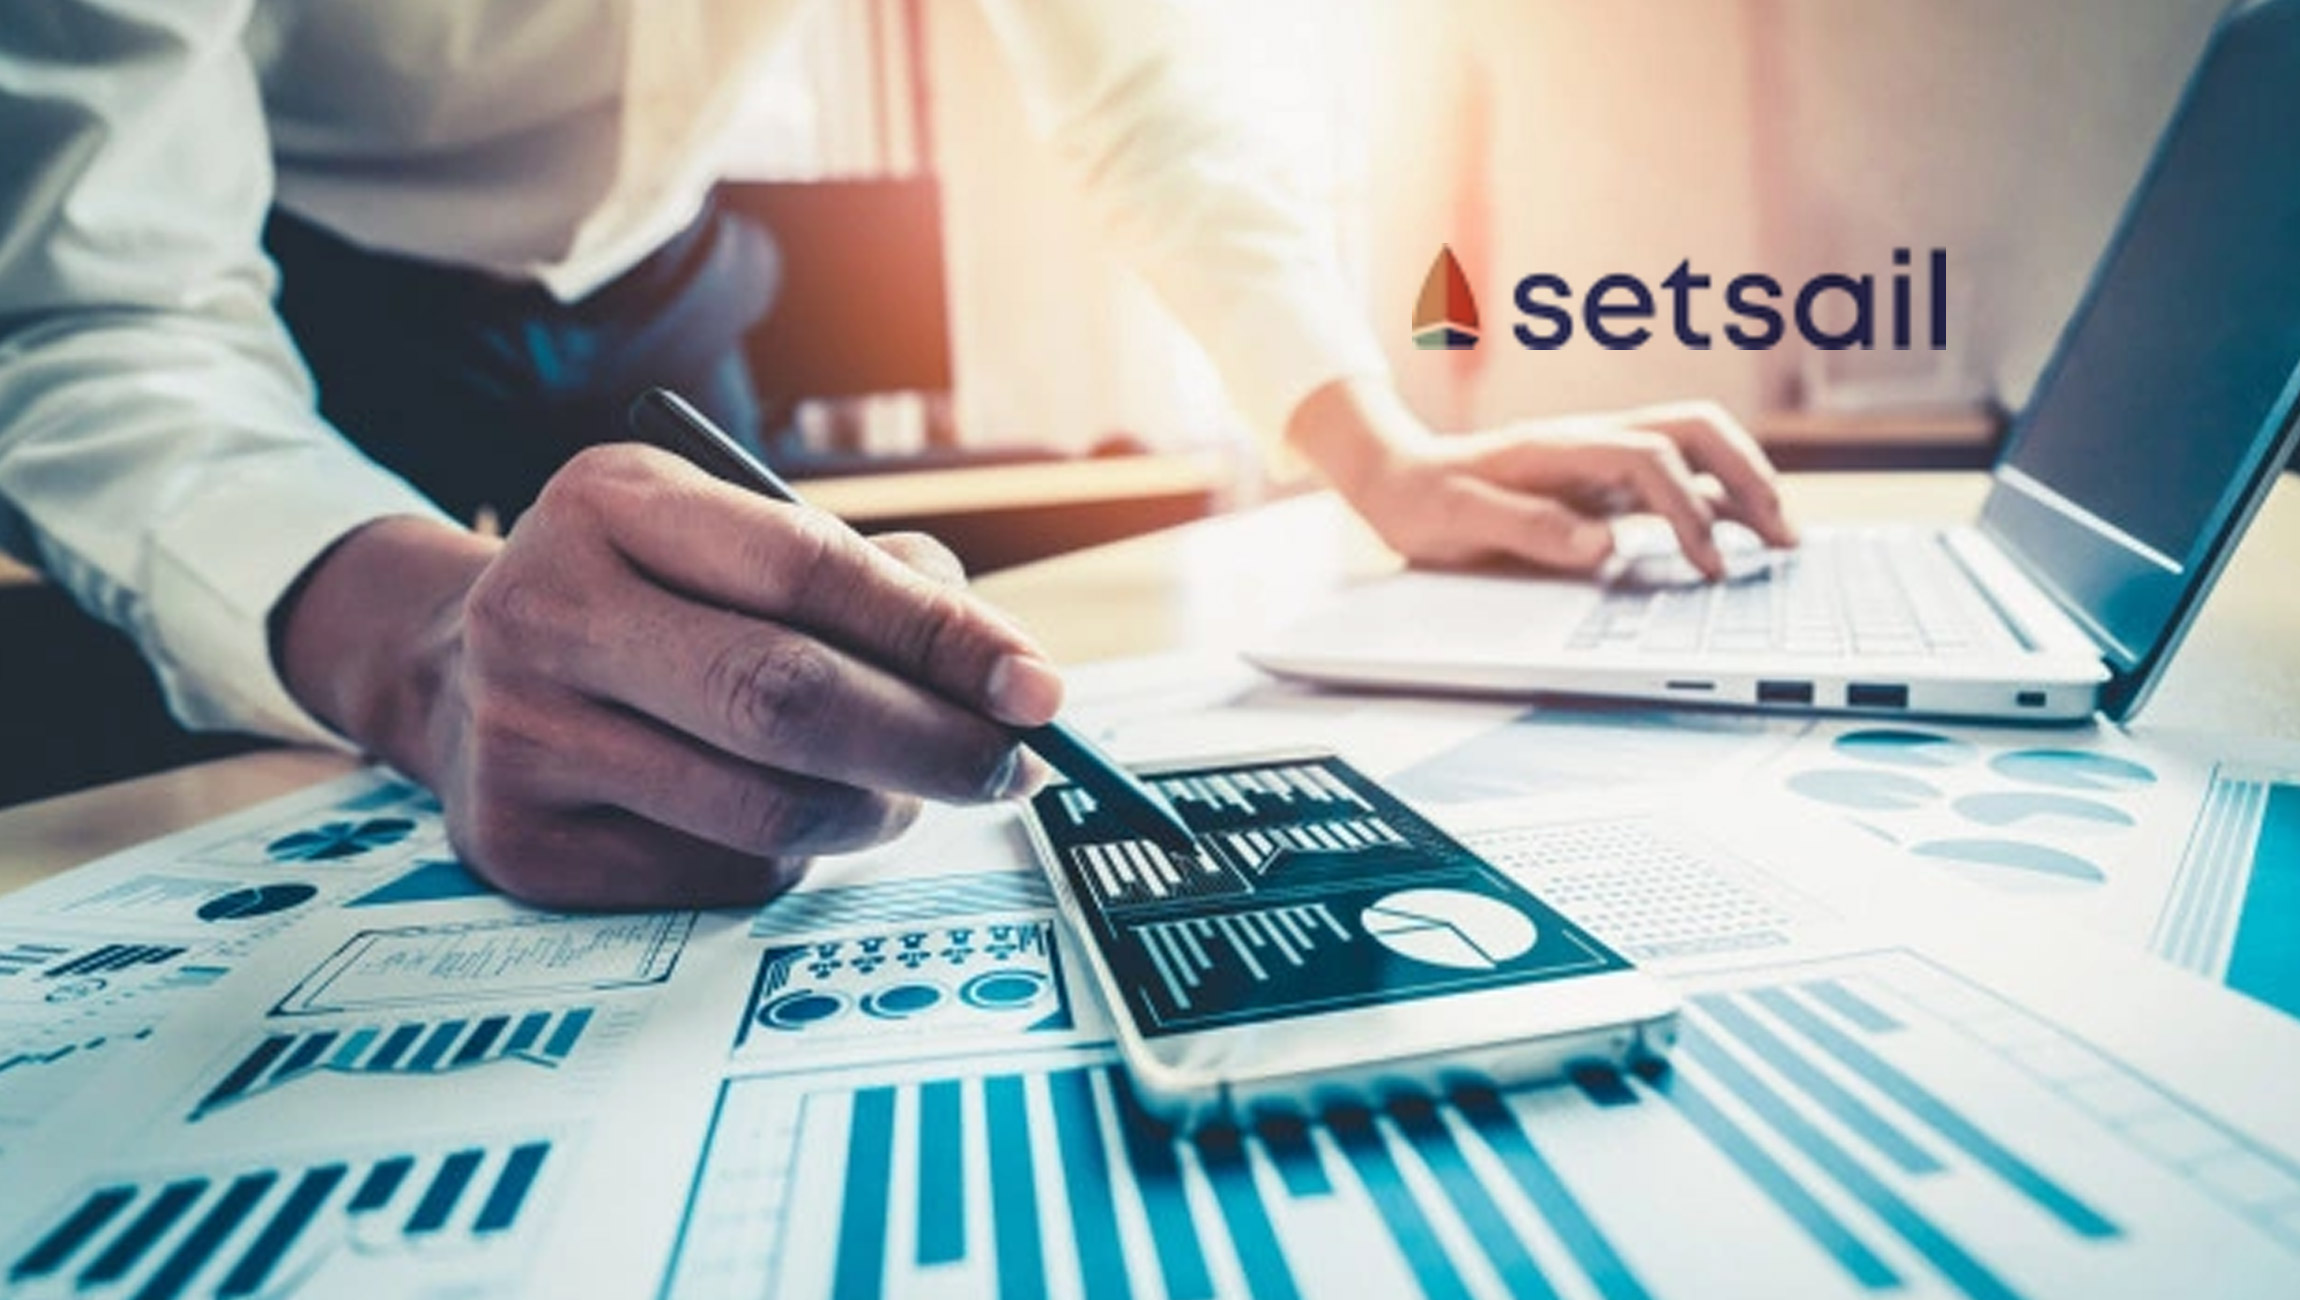 SetSail Hires Dean Patton as Chief Revenue Officer Amid Record Company Growth